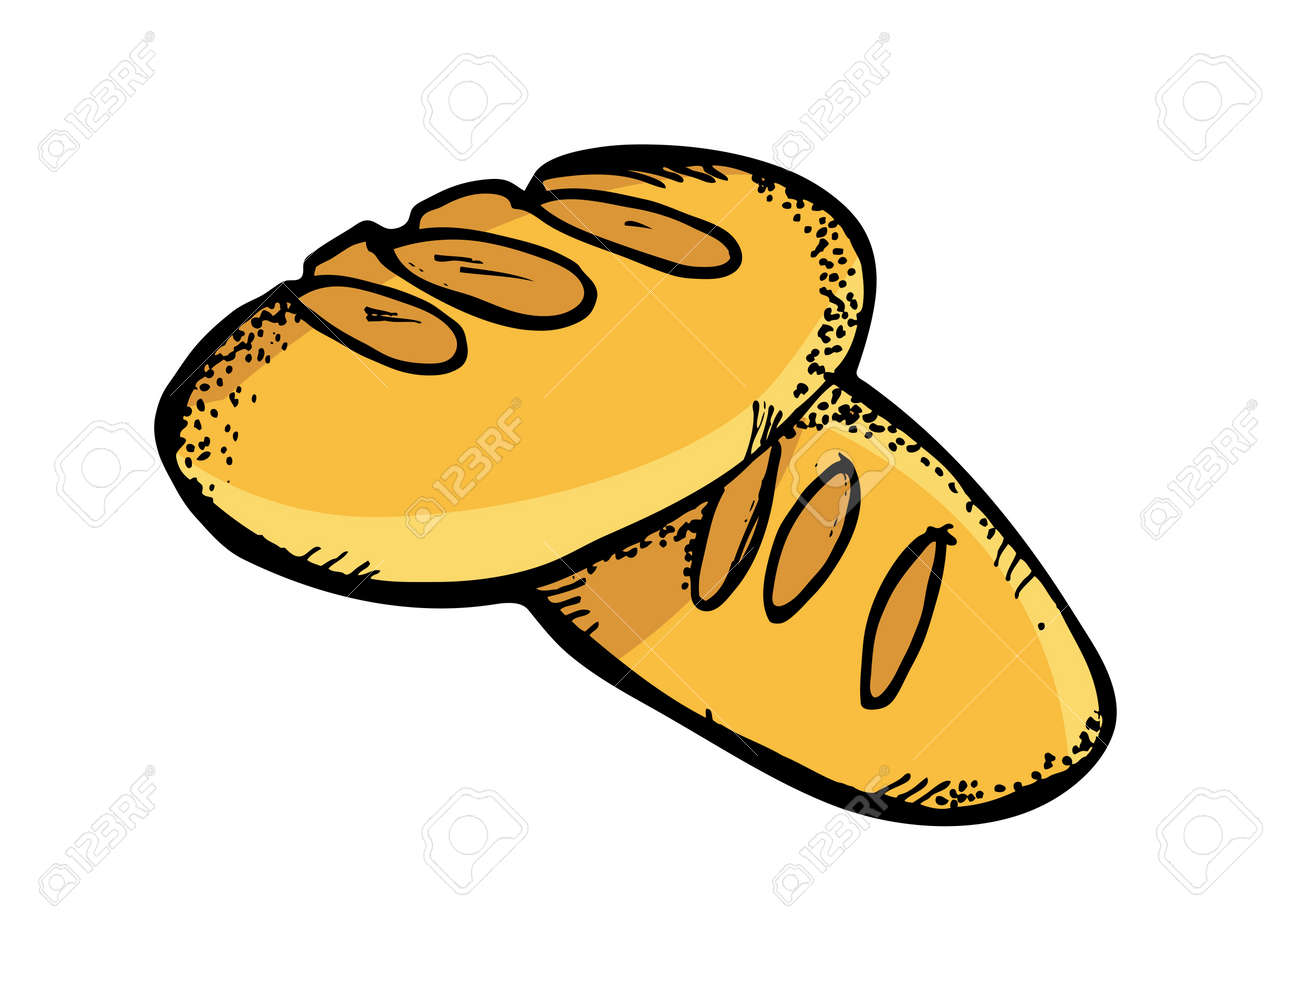 bread in doodle style royalty free cliparts vectors and stock rh 123rf com bread clip art free beard clip art free